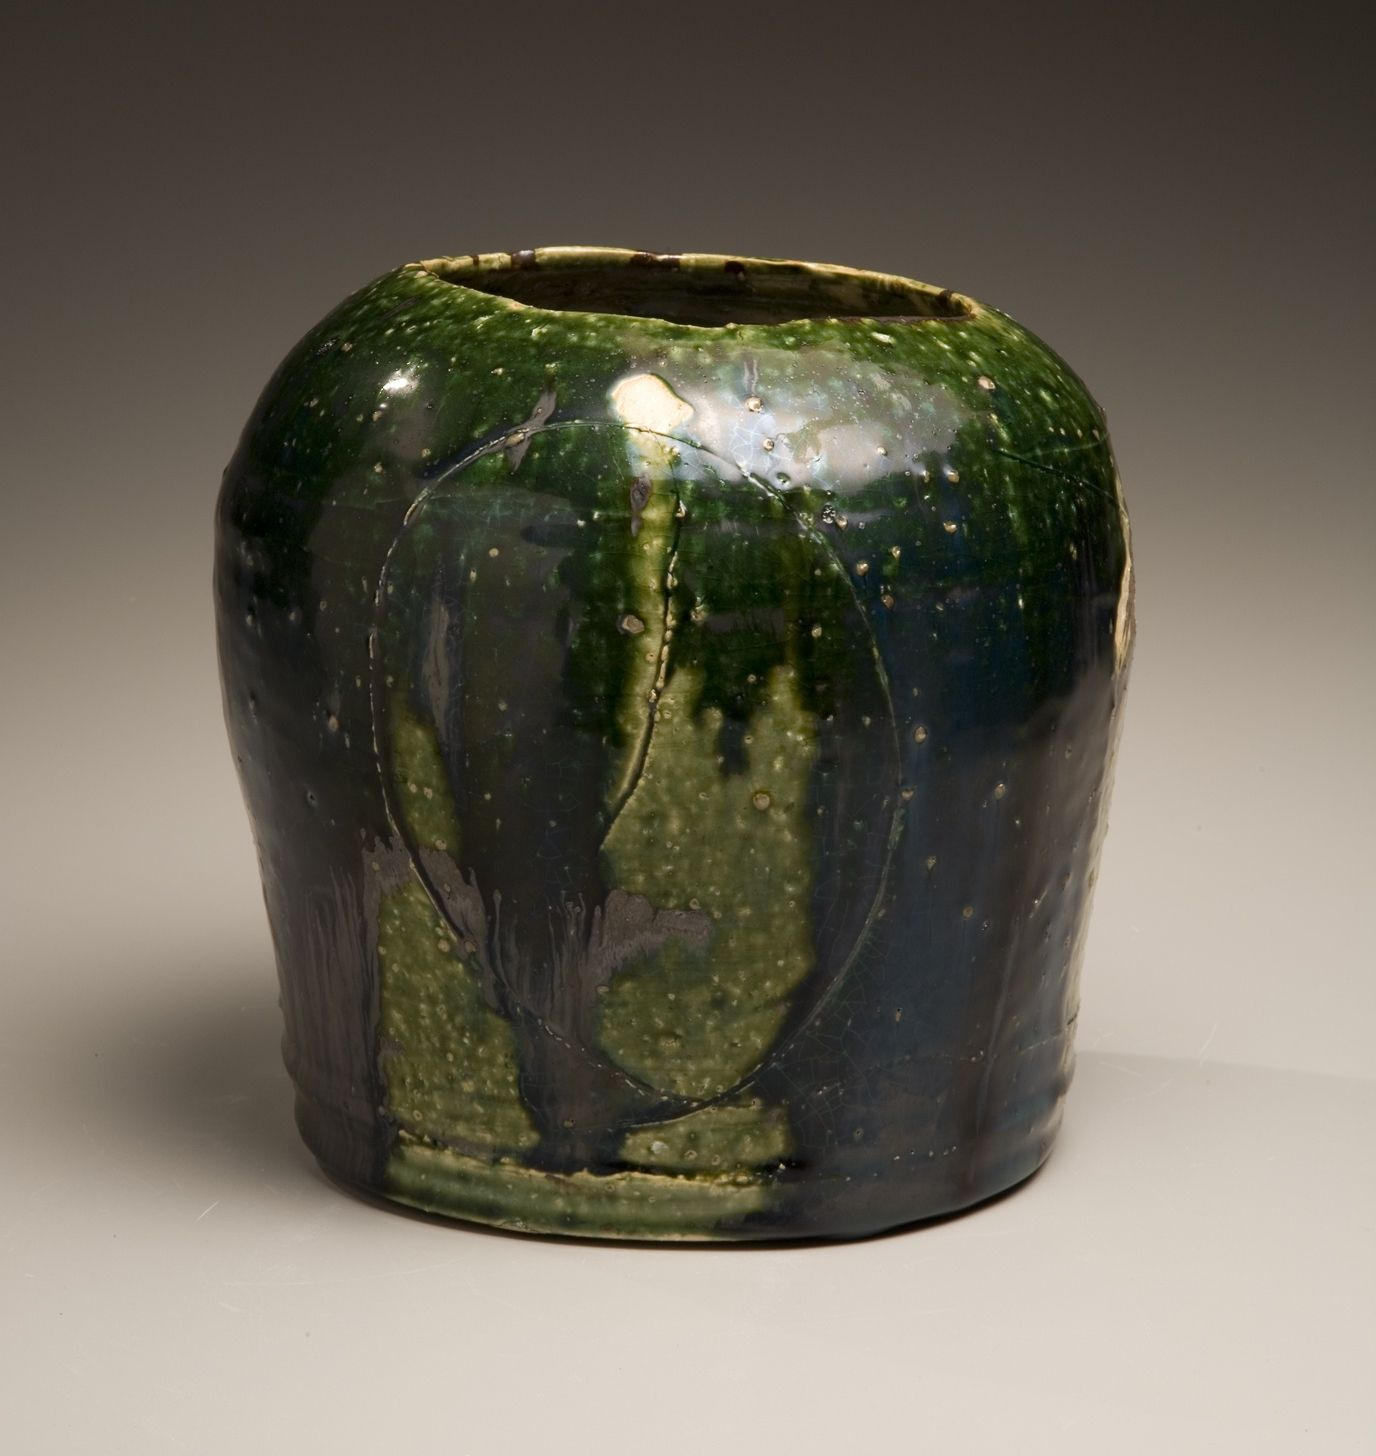 Rounded vessel, 2005